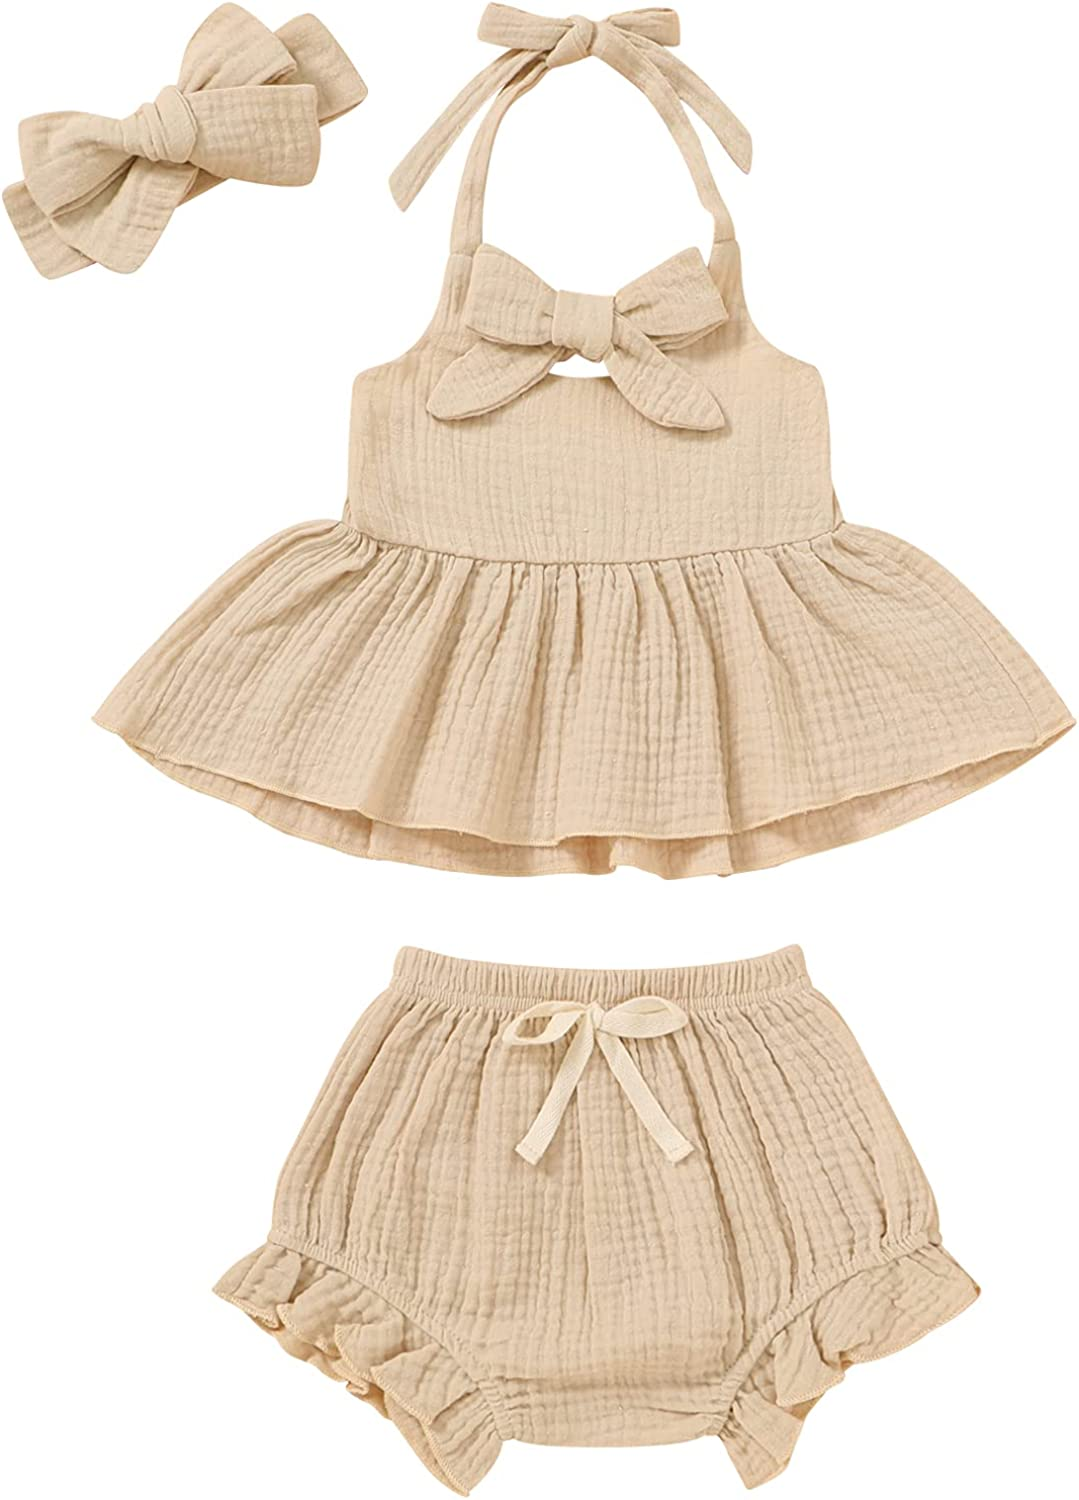 3PCS Newborn Toddler Baby Girl Ruffles Crop Tops Set Clothes Bloomers Shorts Summer Outfit with Headband